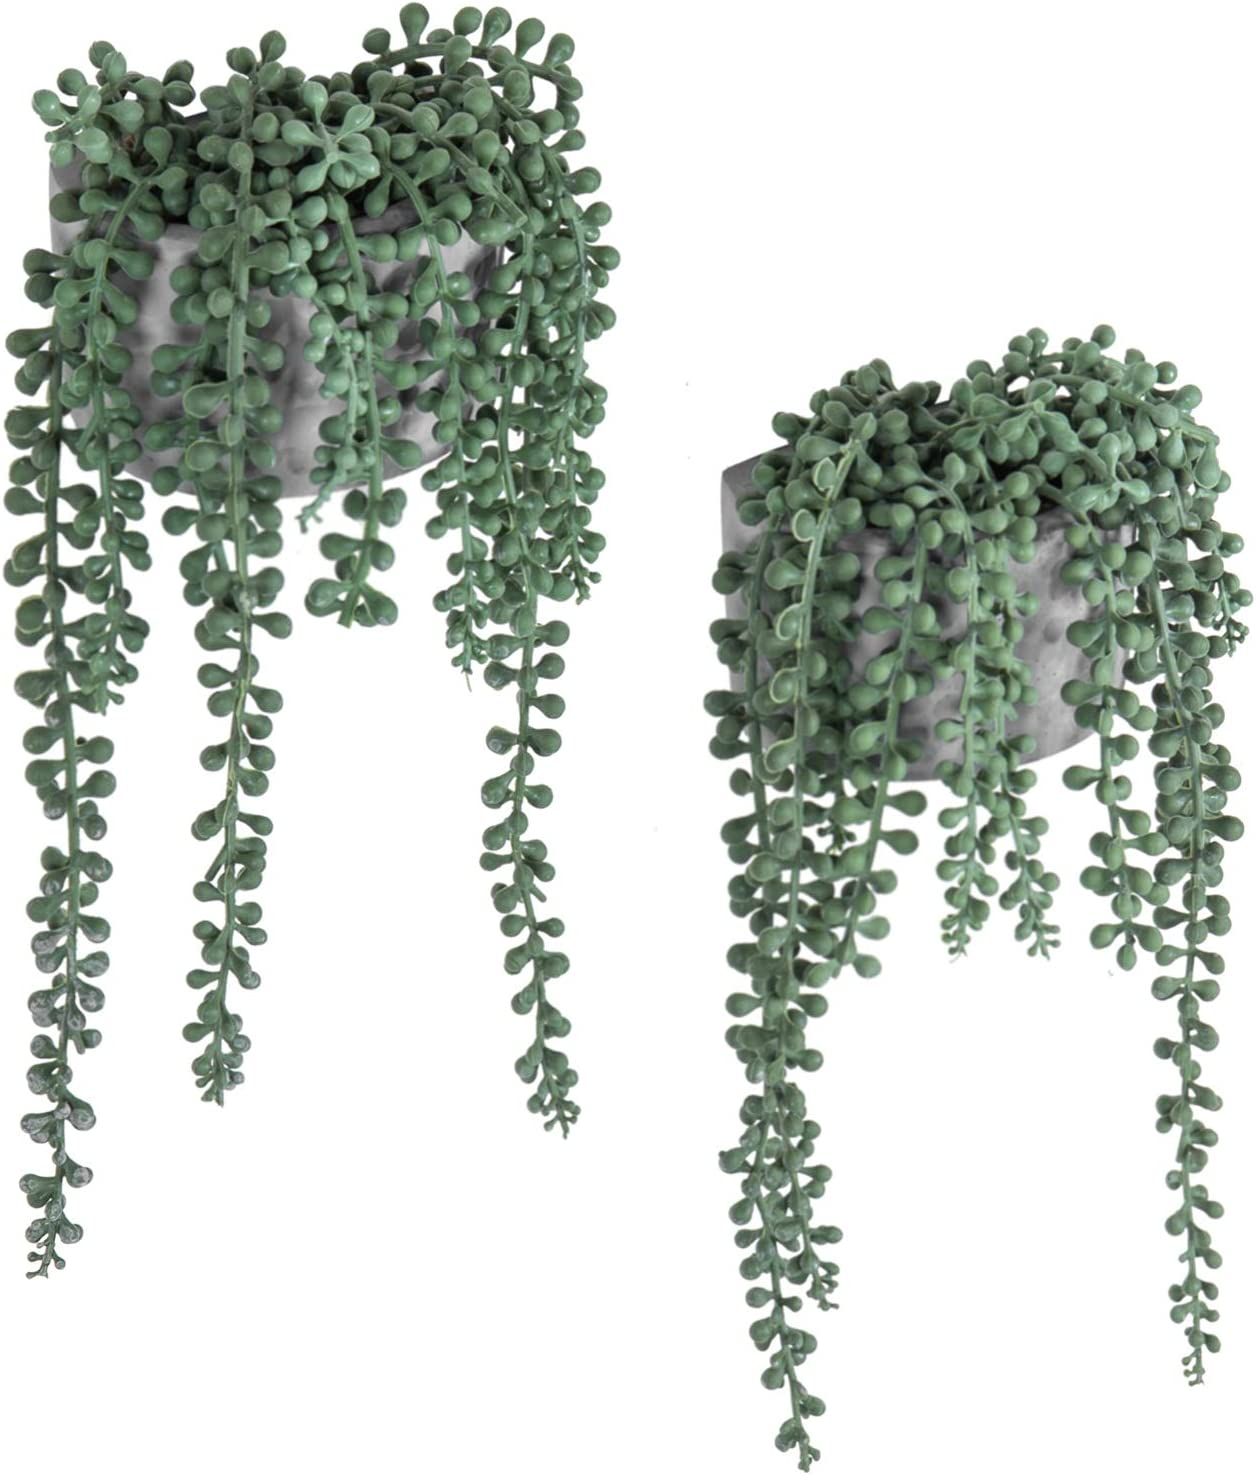 MyGift Artificial String of Pearls Plants in Wall-Hanging Gray Cement Planters, Set of 2